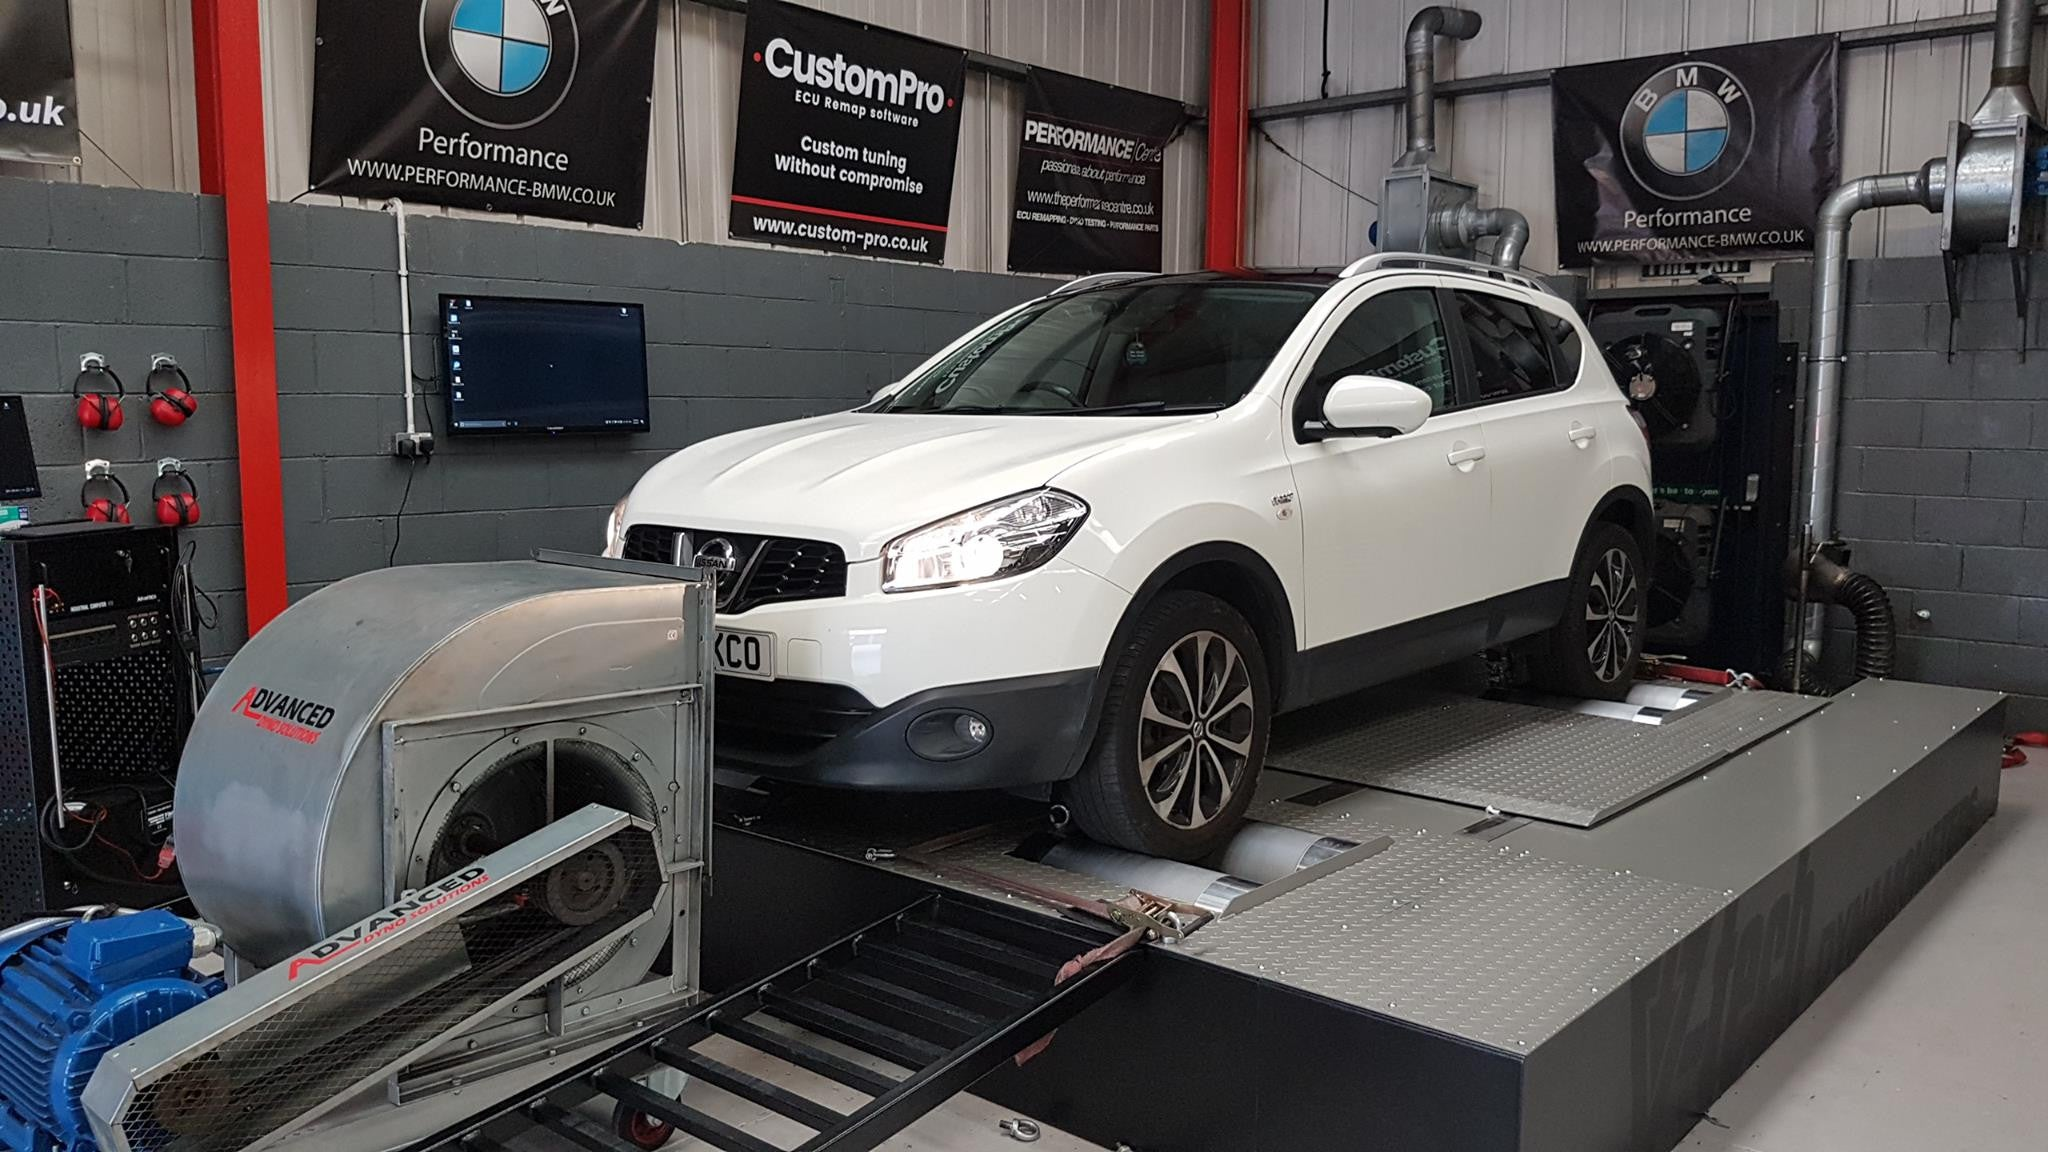 Nissan Qashqai 1.5 DCI - Stage 1 remap